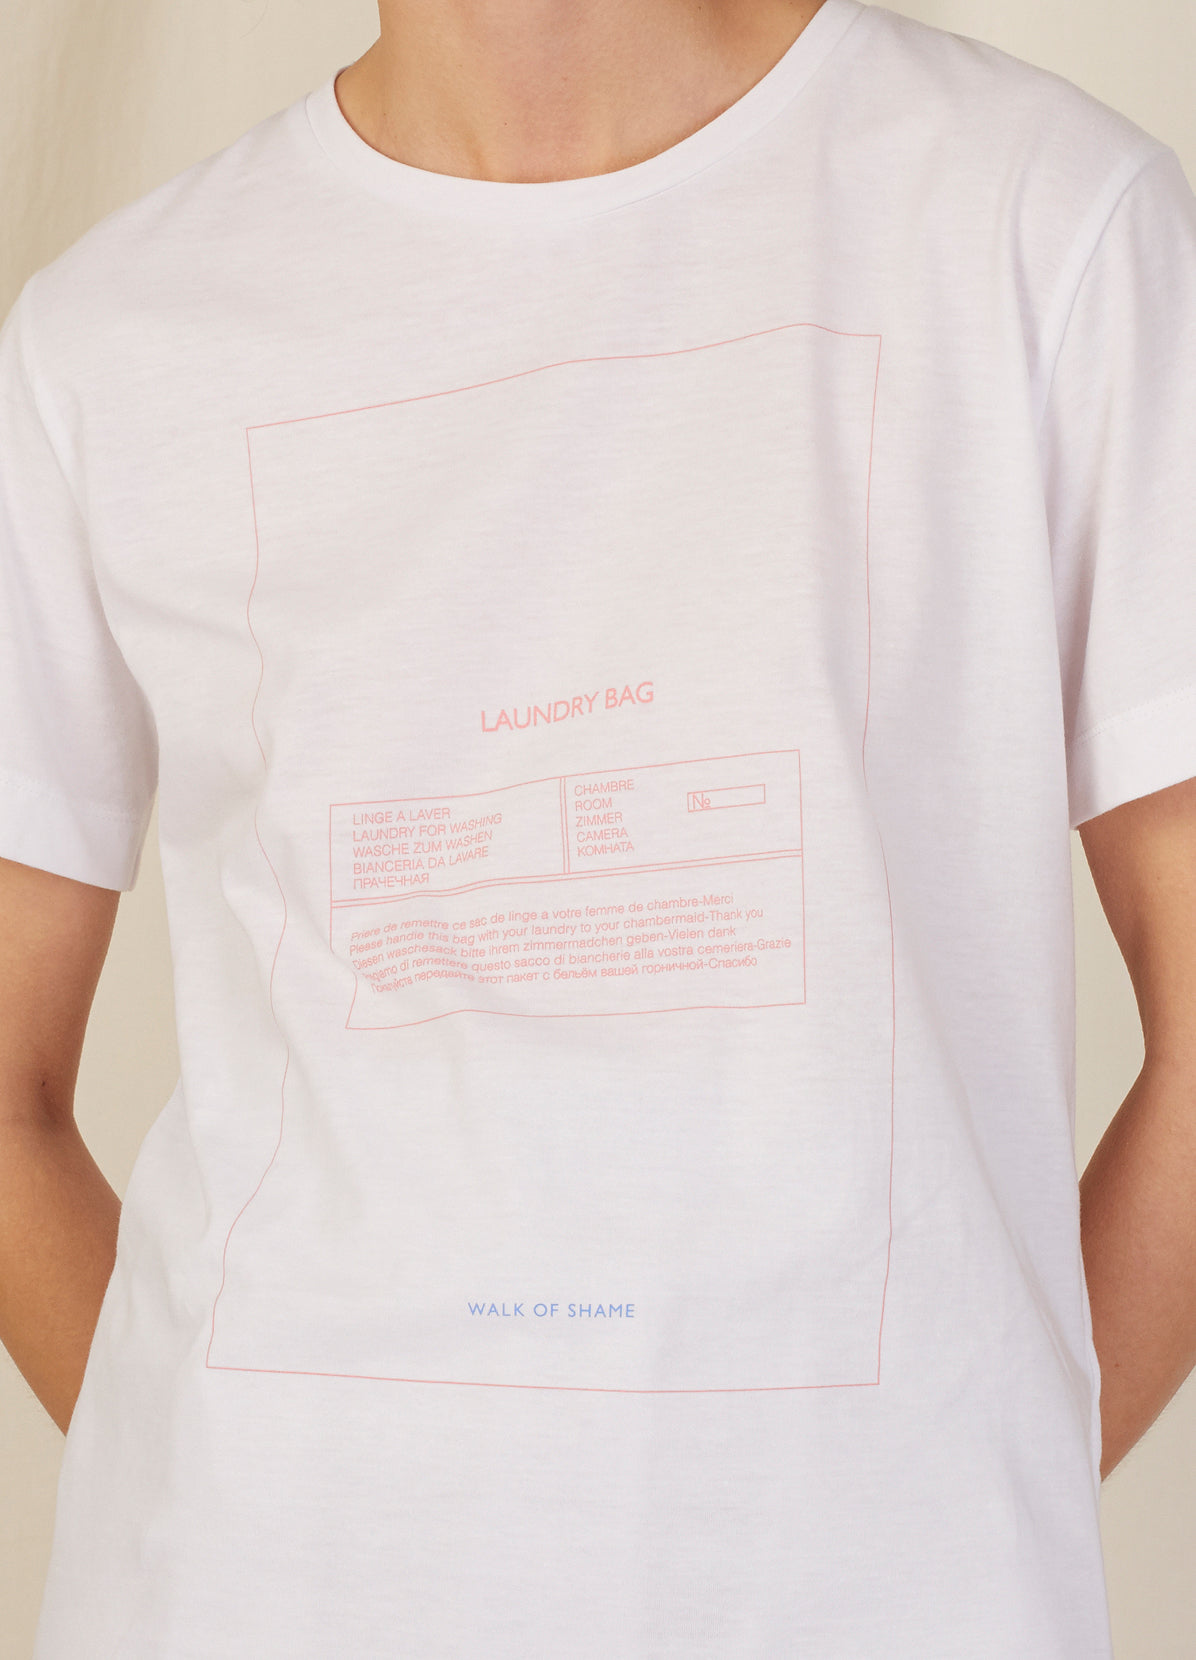 LAUNDRY BAG T-SHIRT